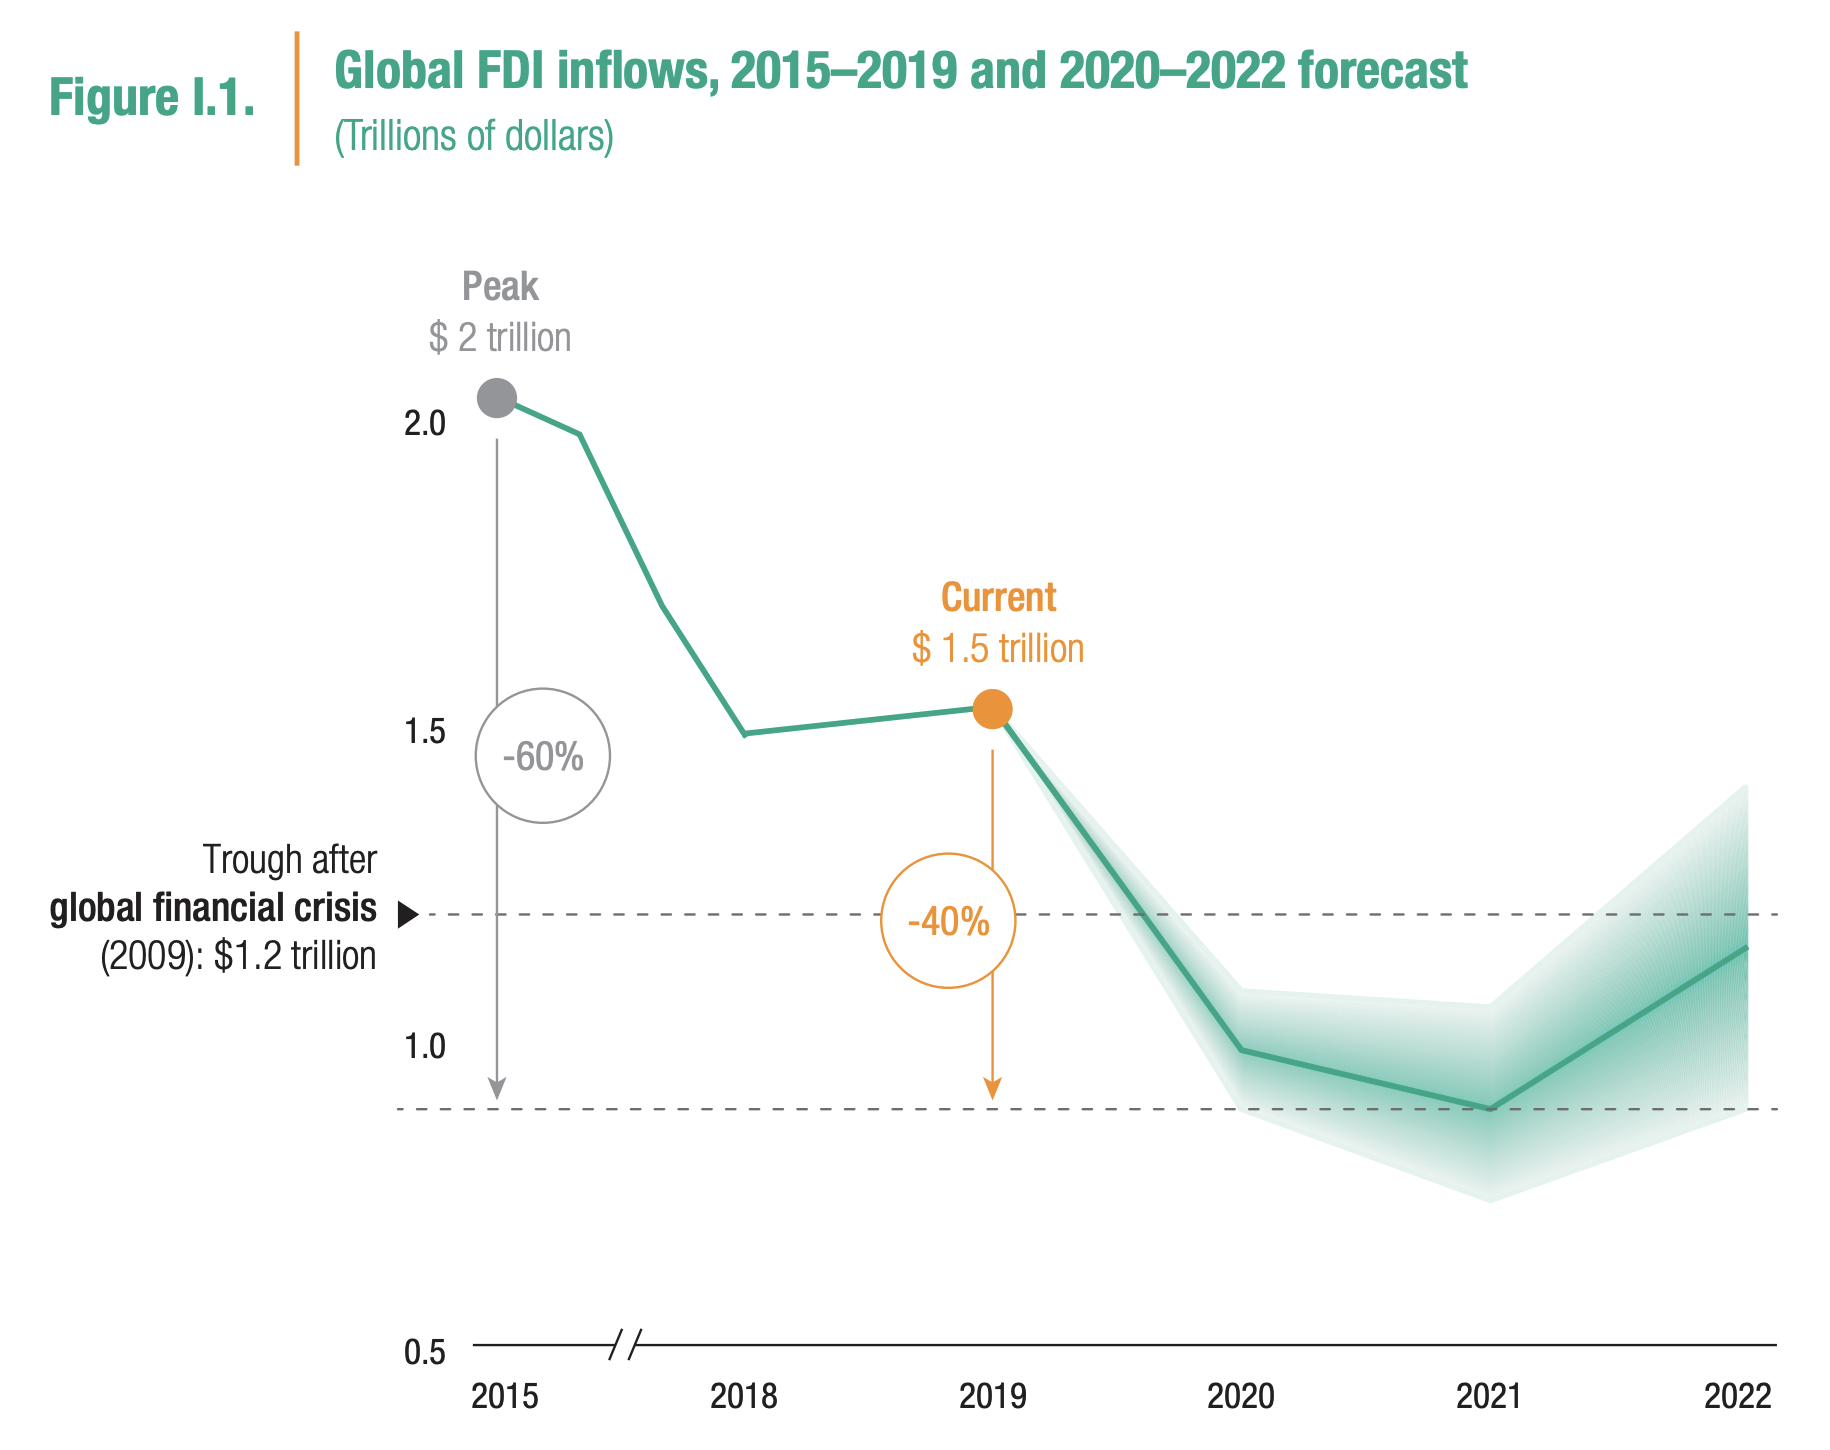 Next year could see a resurgence of FDI inflows around the globe